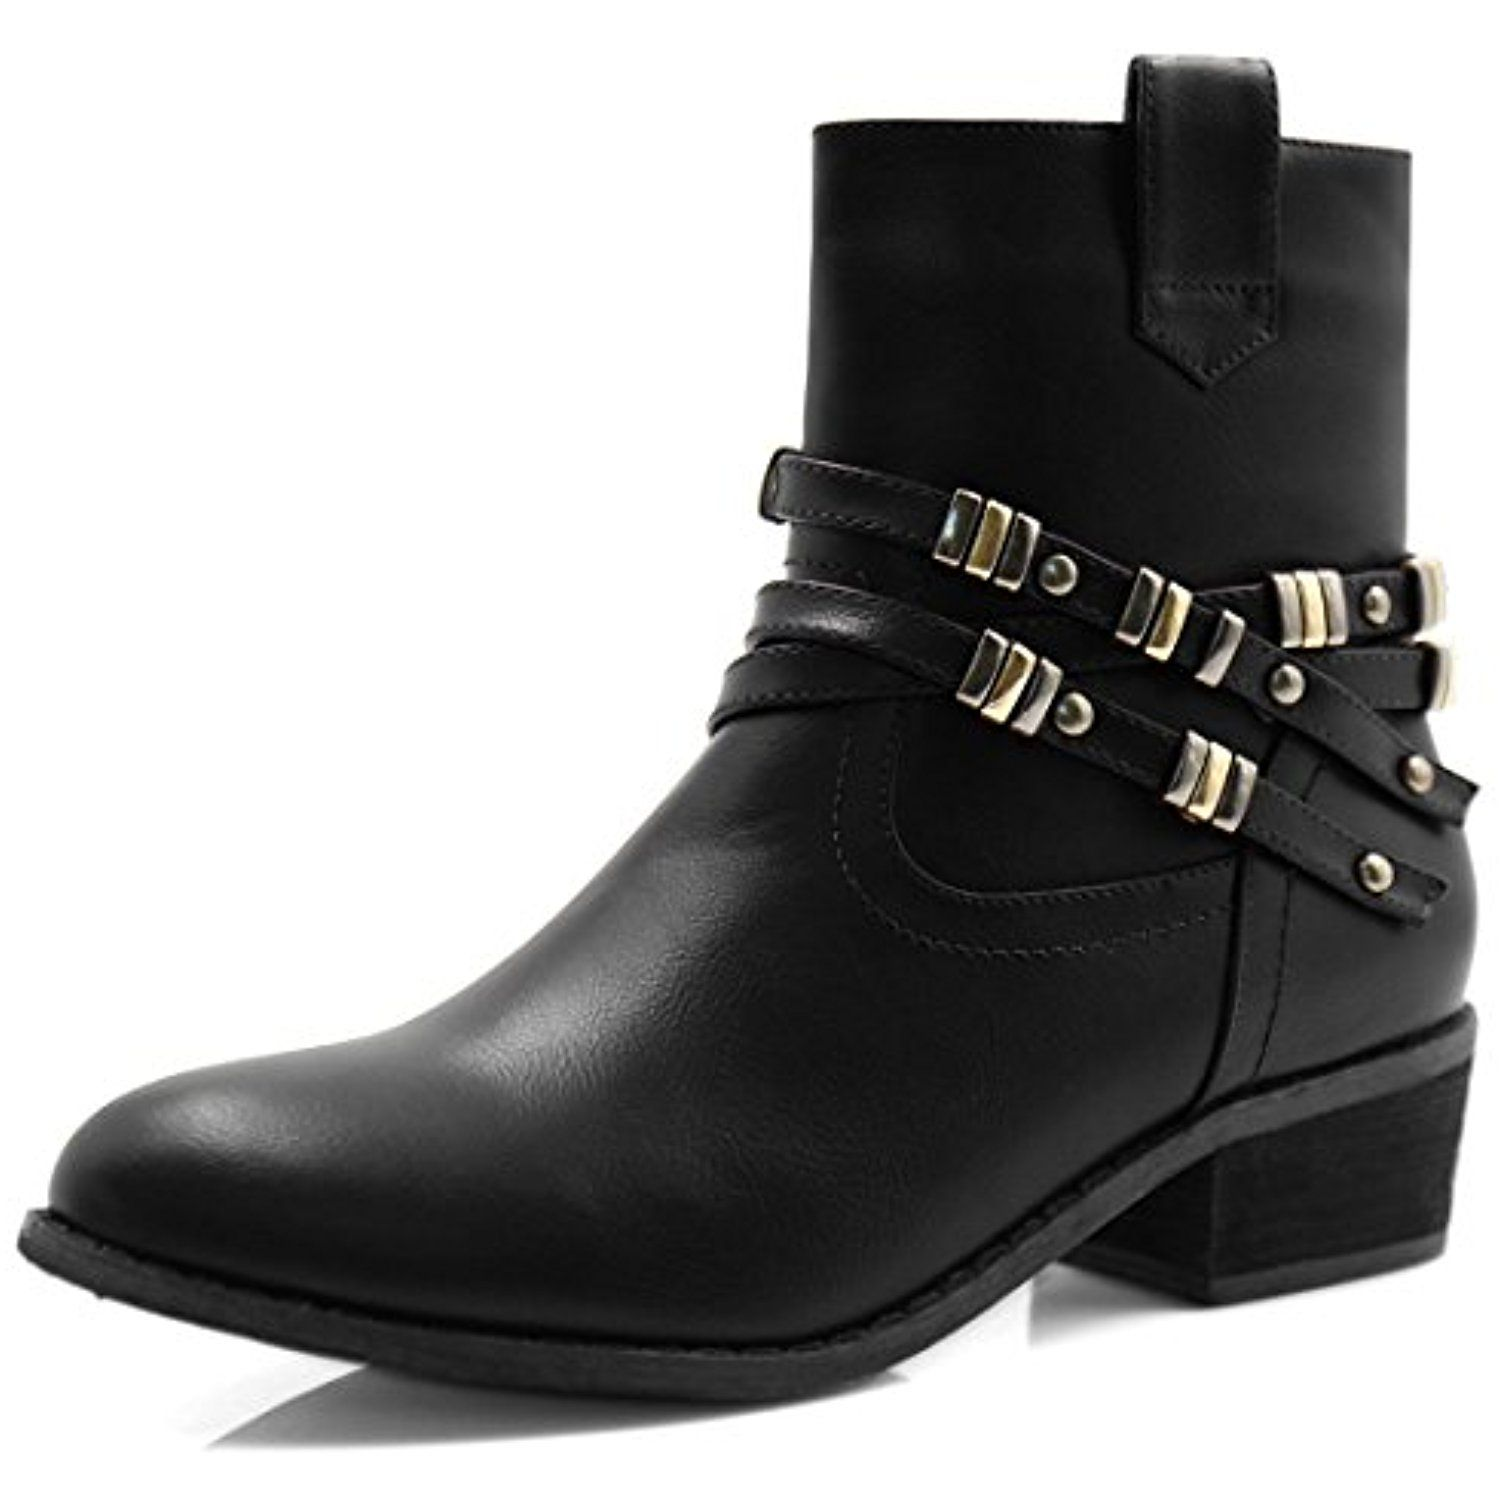 Women's Studded Straps Block Heel Zipper Motorcycle Ankle Boots